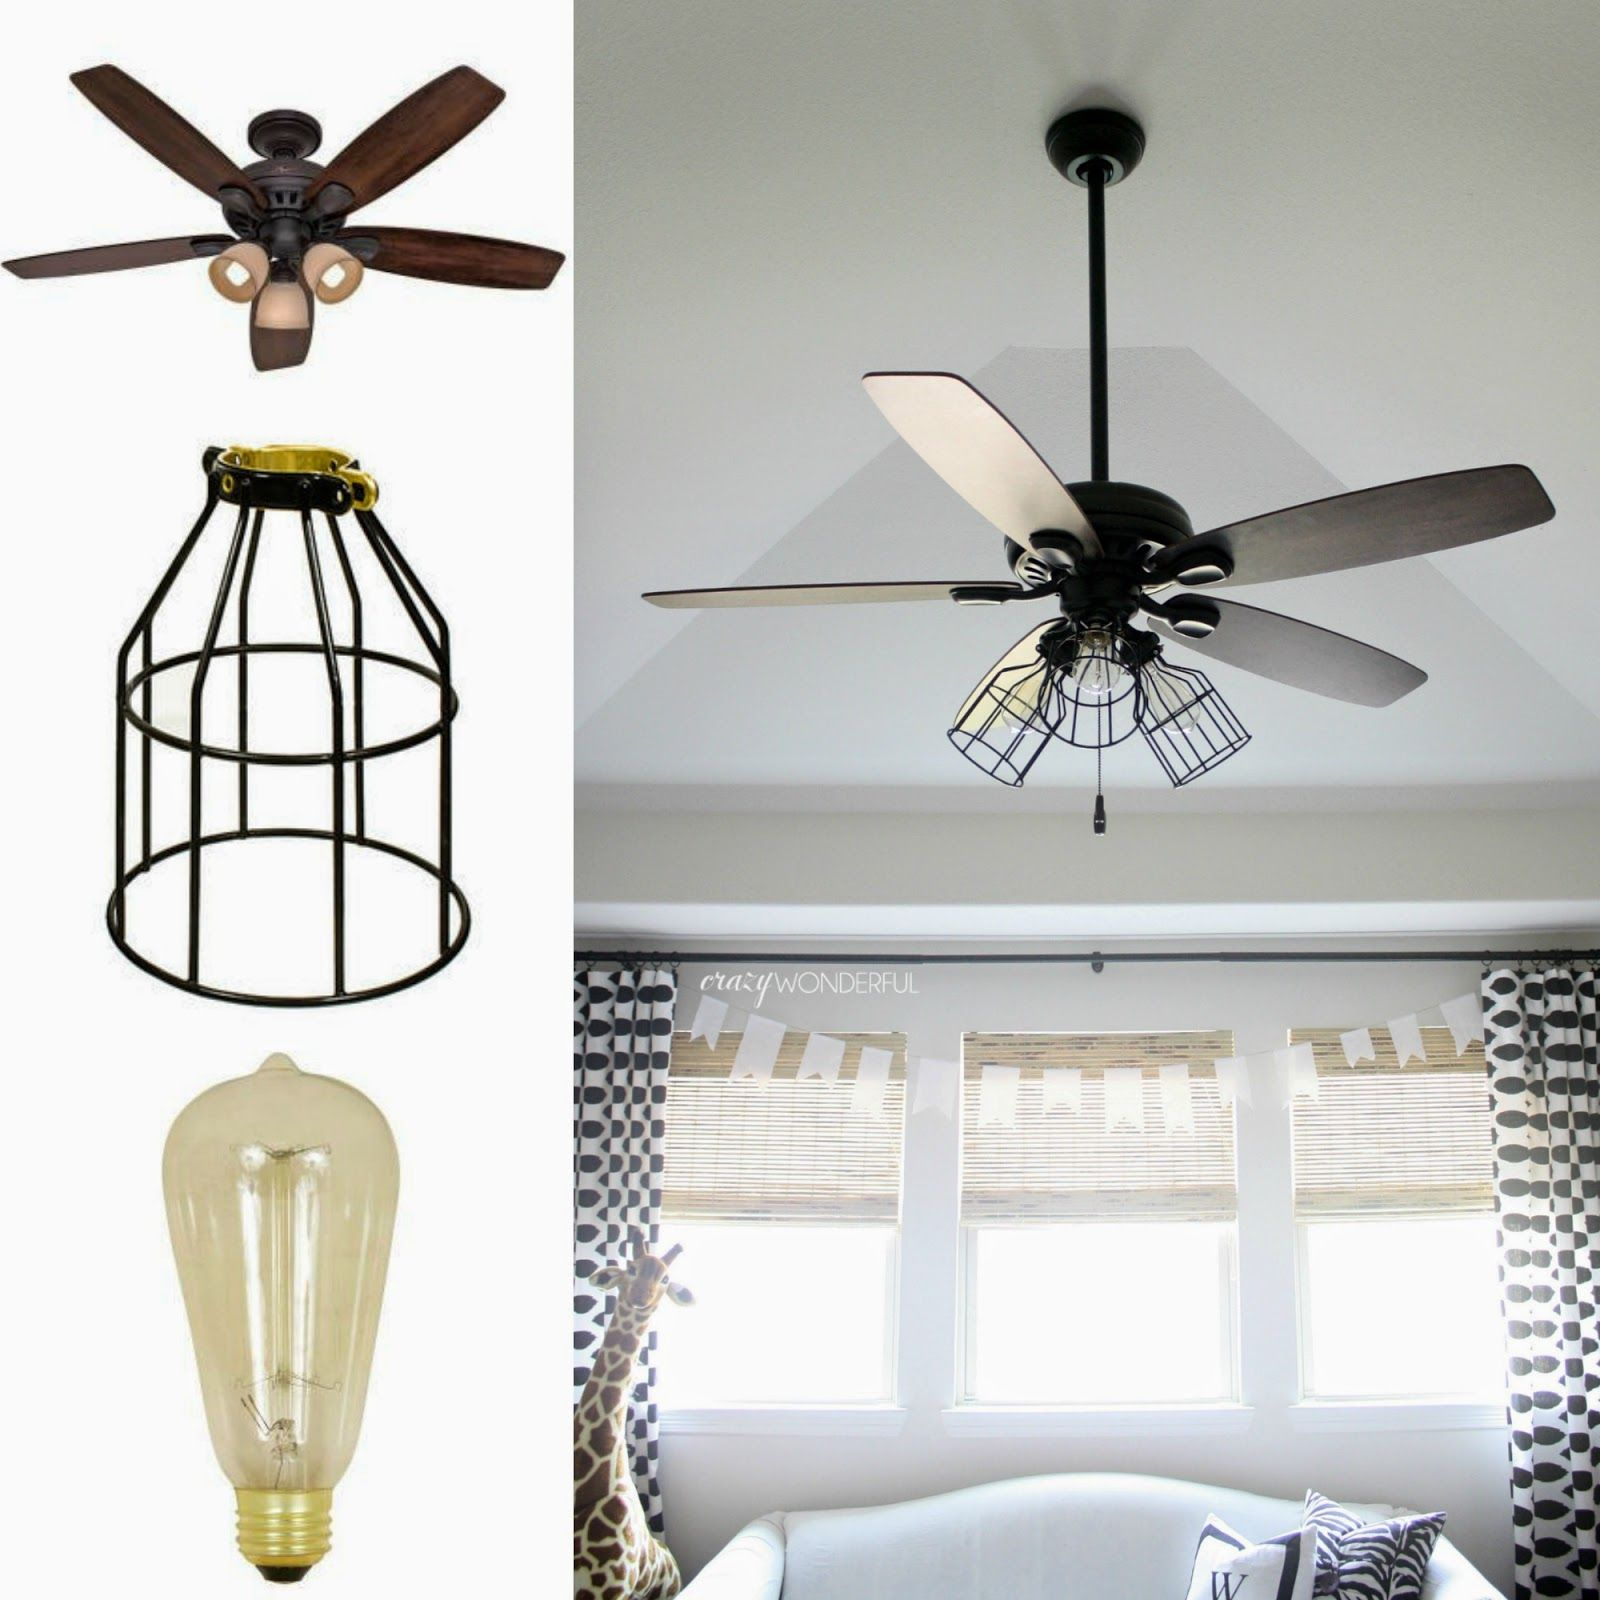 Crazy Wonderful Diy Cage Light Ceiling Fan Ceiling Fan Light Cover Diy Ceiling Ceiling Fan Makeover